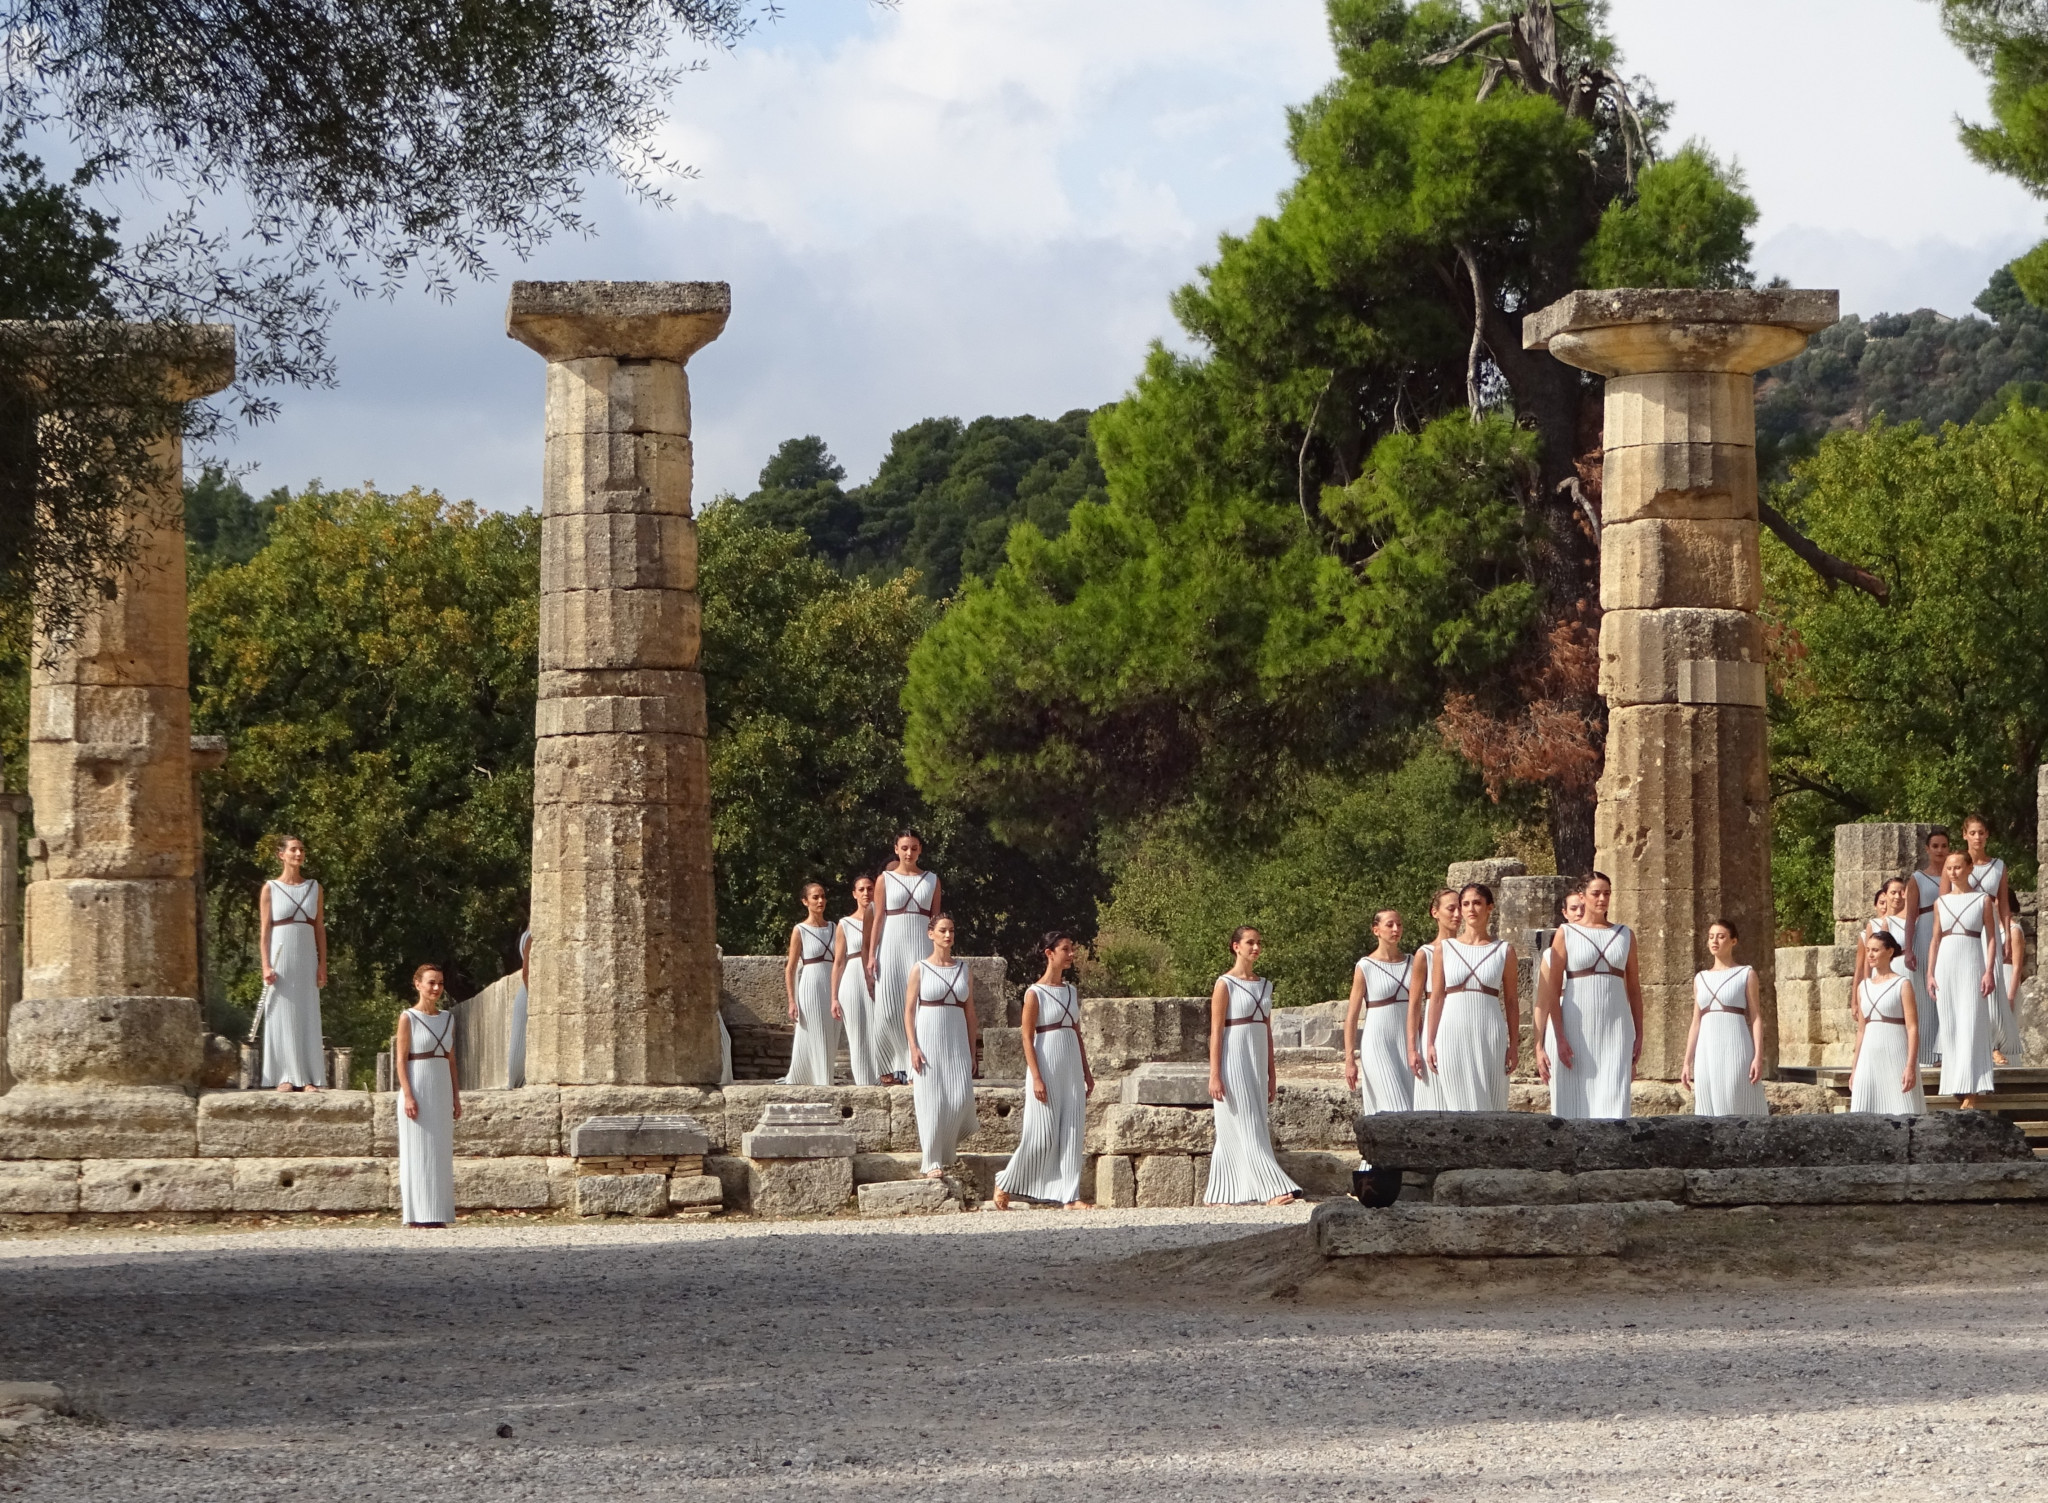 The Olympic Flame is lit in Athens before beginning its journey around the host country of the Games ©Philip Barker